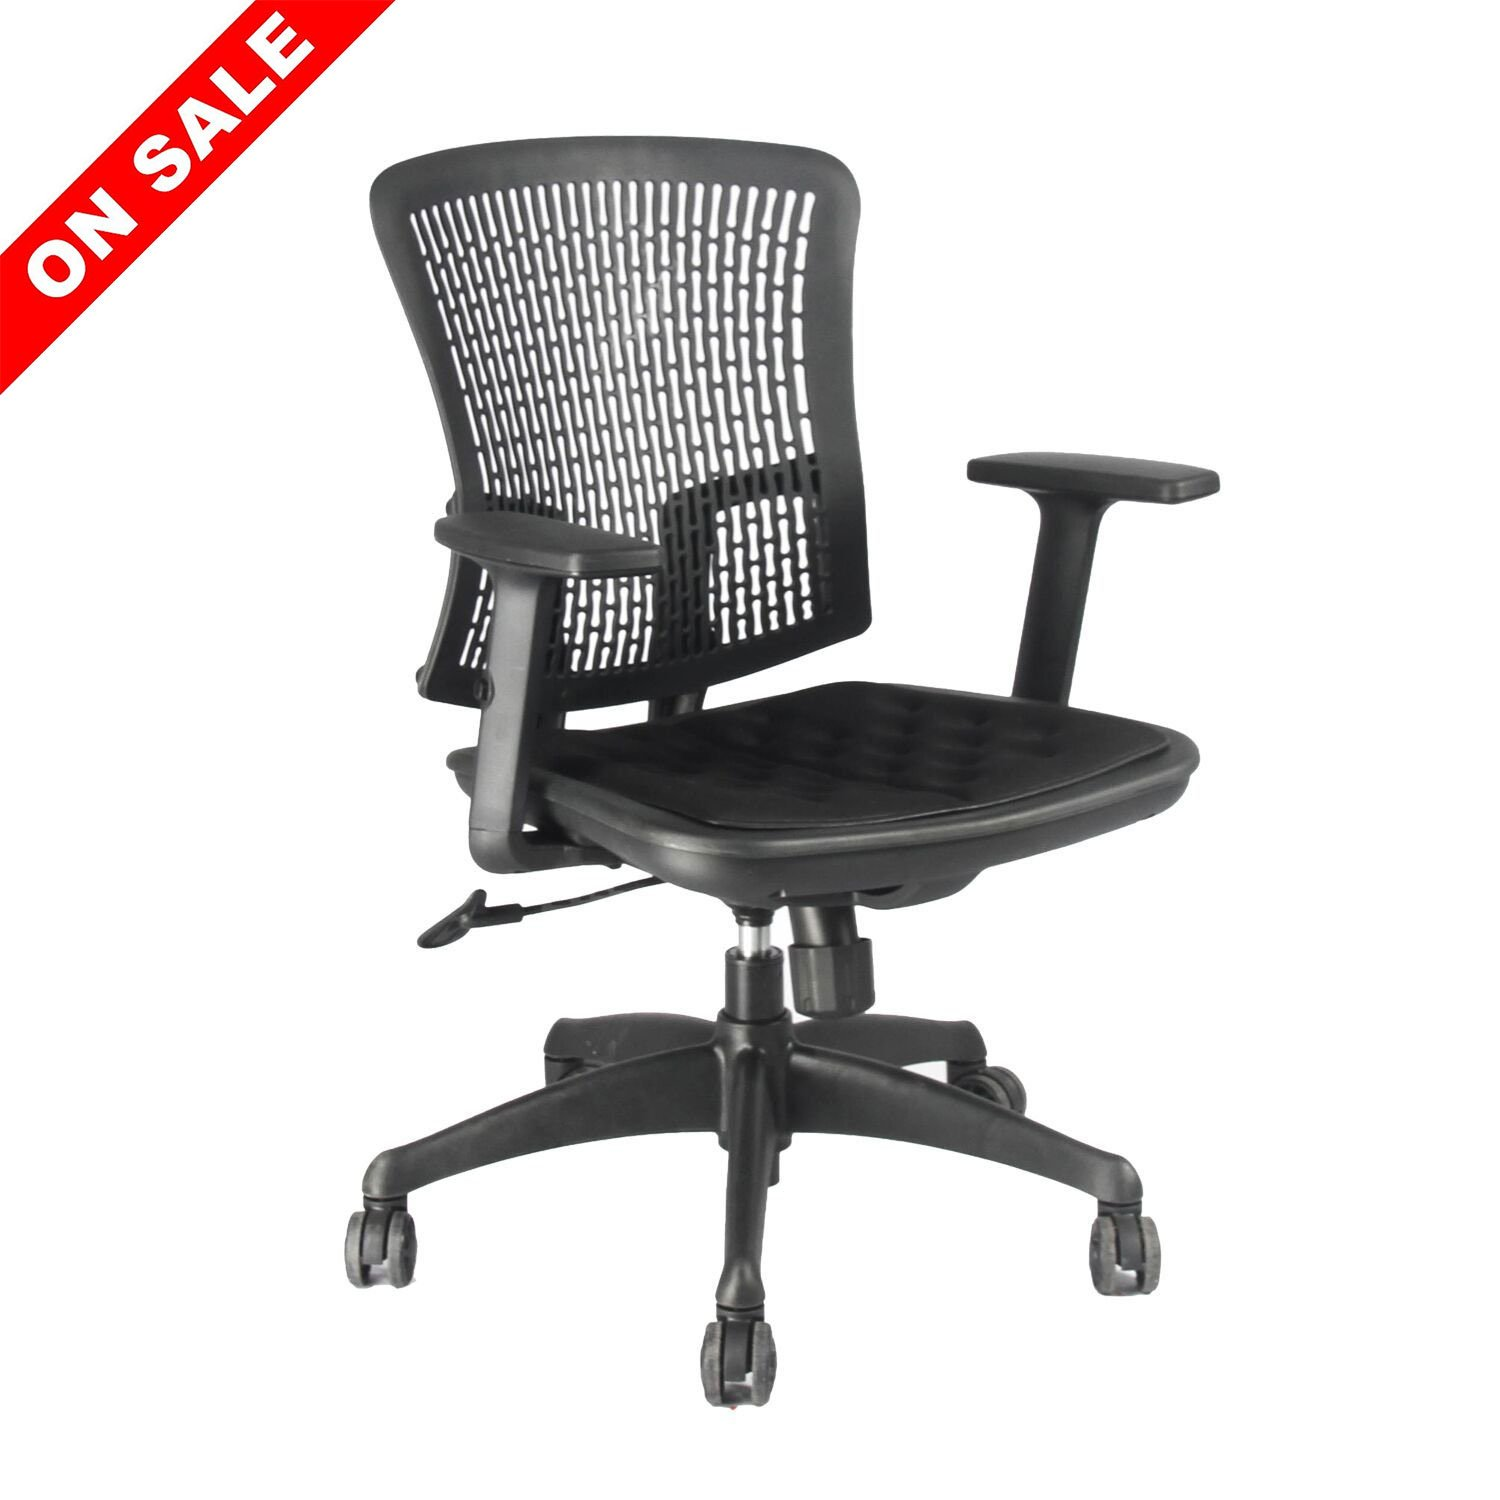 Ergonomic Office Chair Mesh Midback Office Task Chair Height Armrest Adjustable Yuiky Black